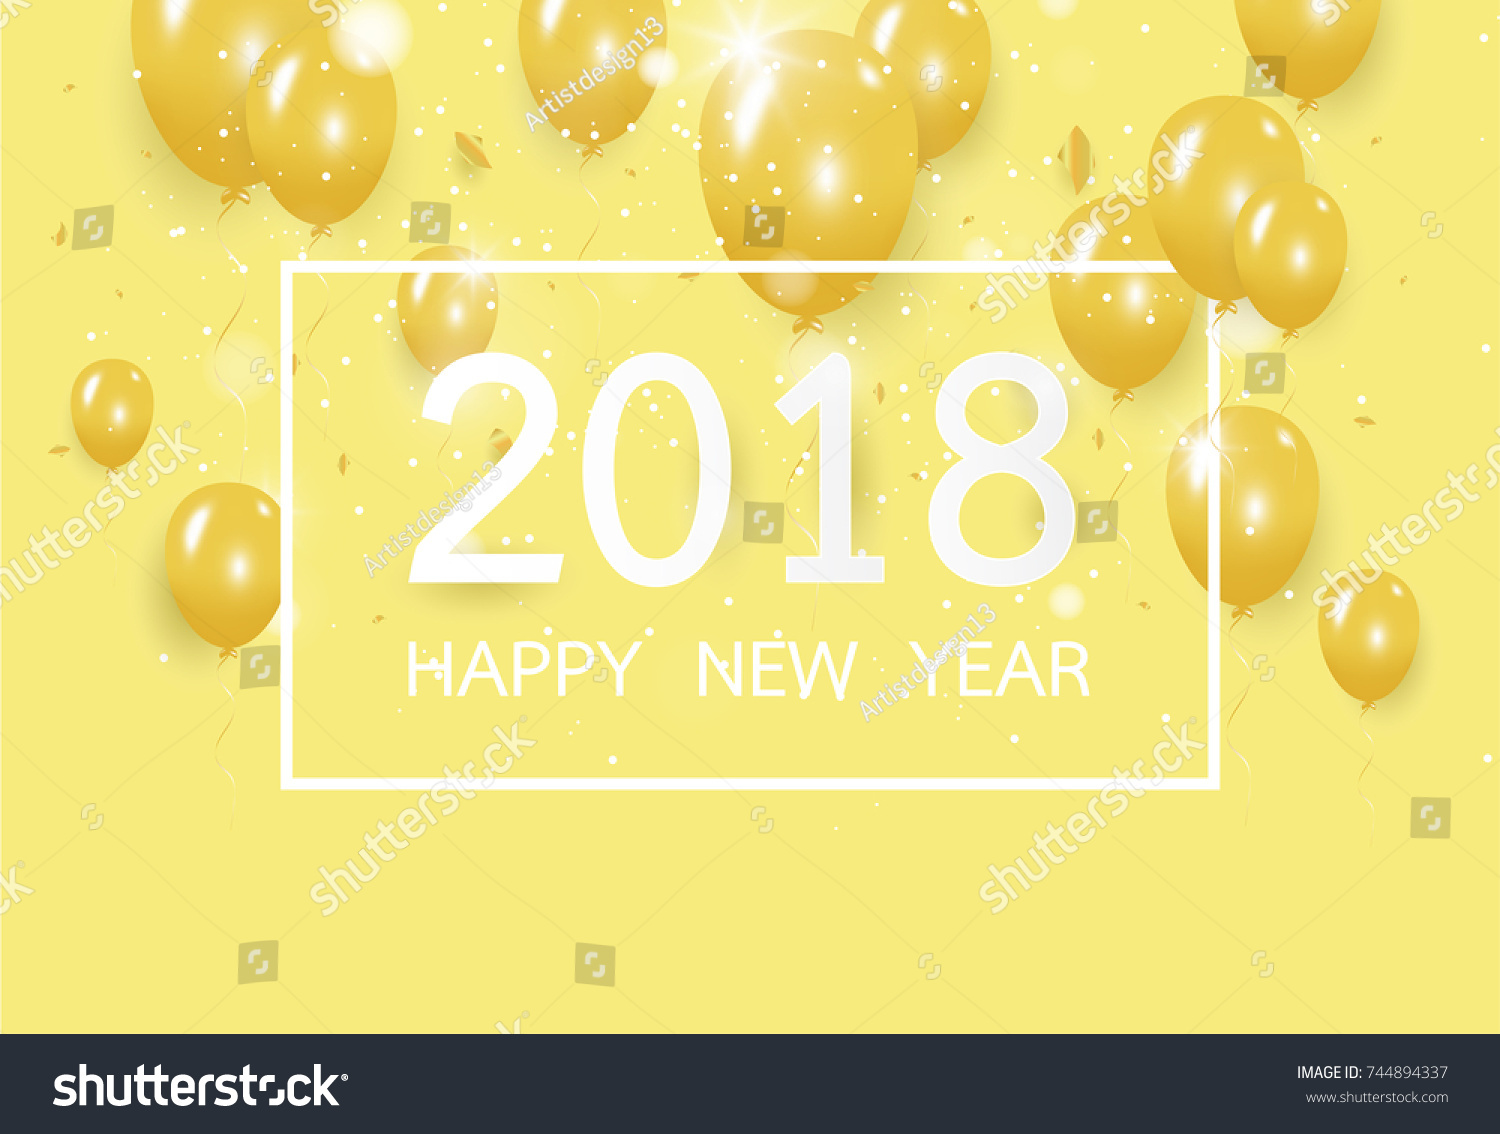 happy new year 2018 with creative yellow balloon concept on pastel pink background for copy space